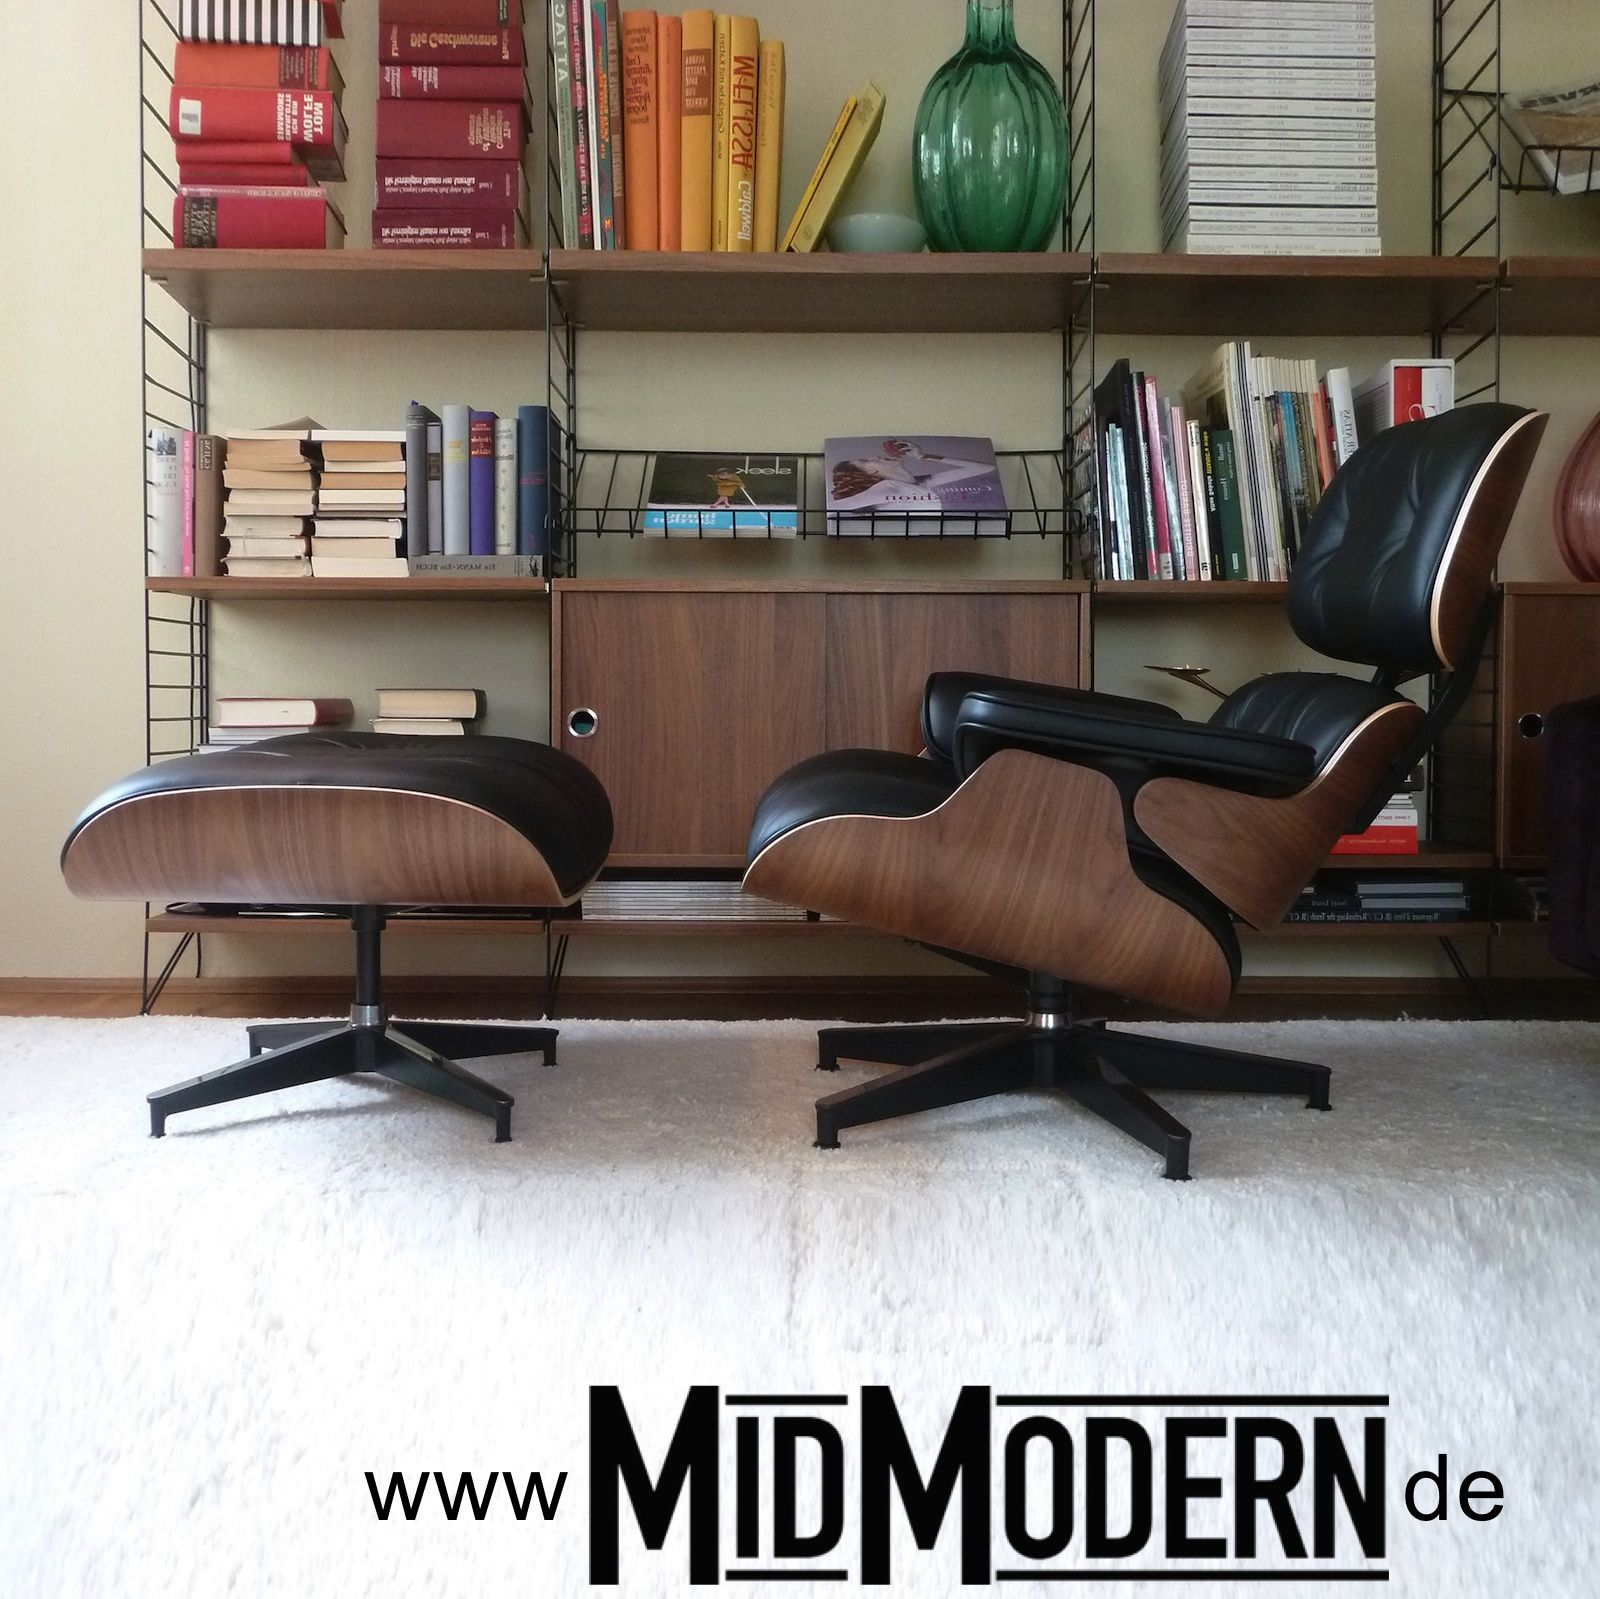 Eames Lounge Chair & Ottoman, Herman Miller, Walnut shells with black leather, 2013